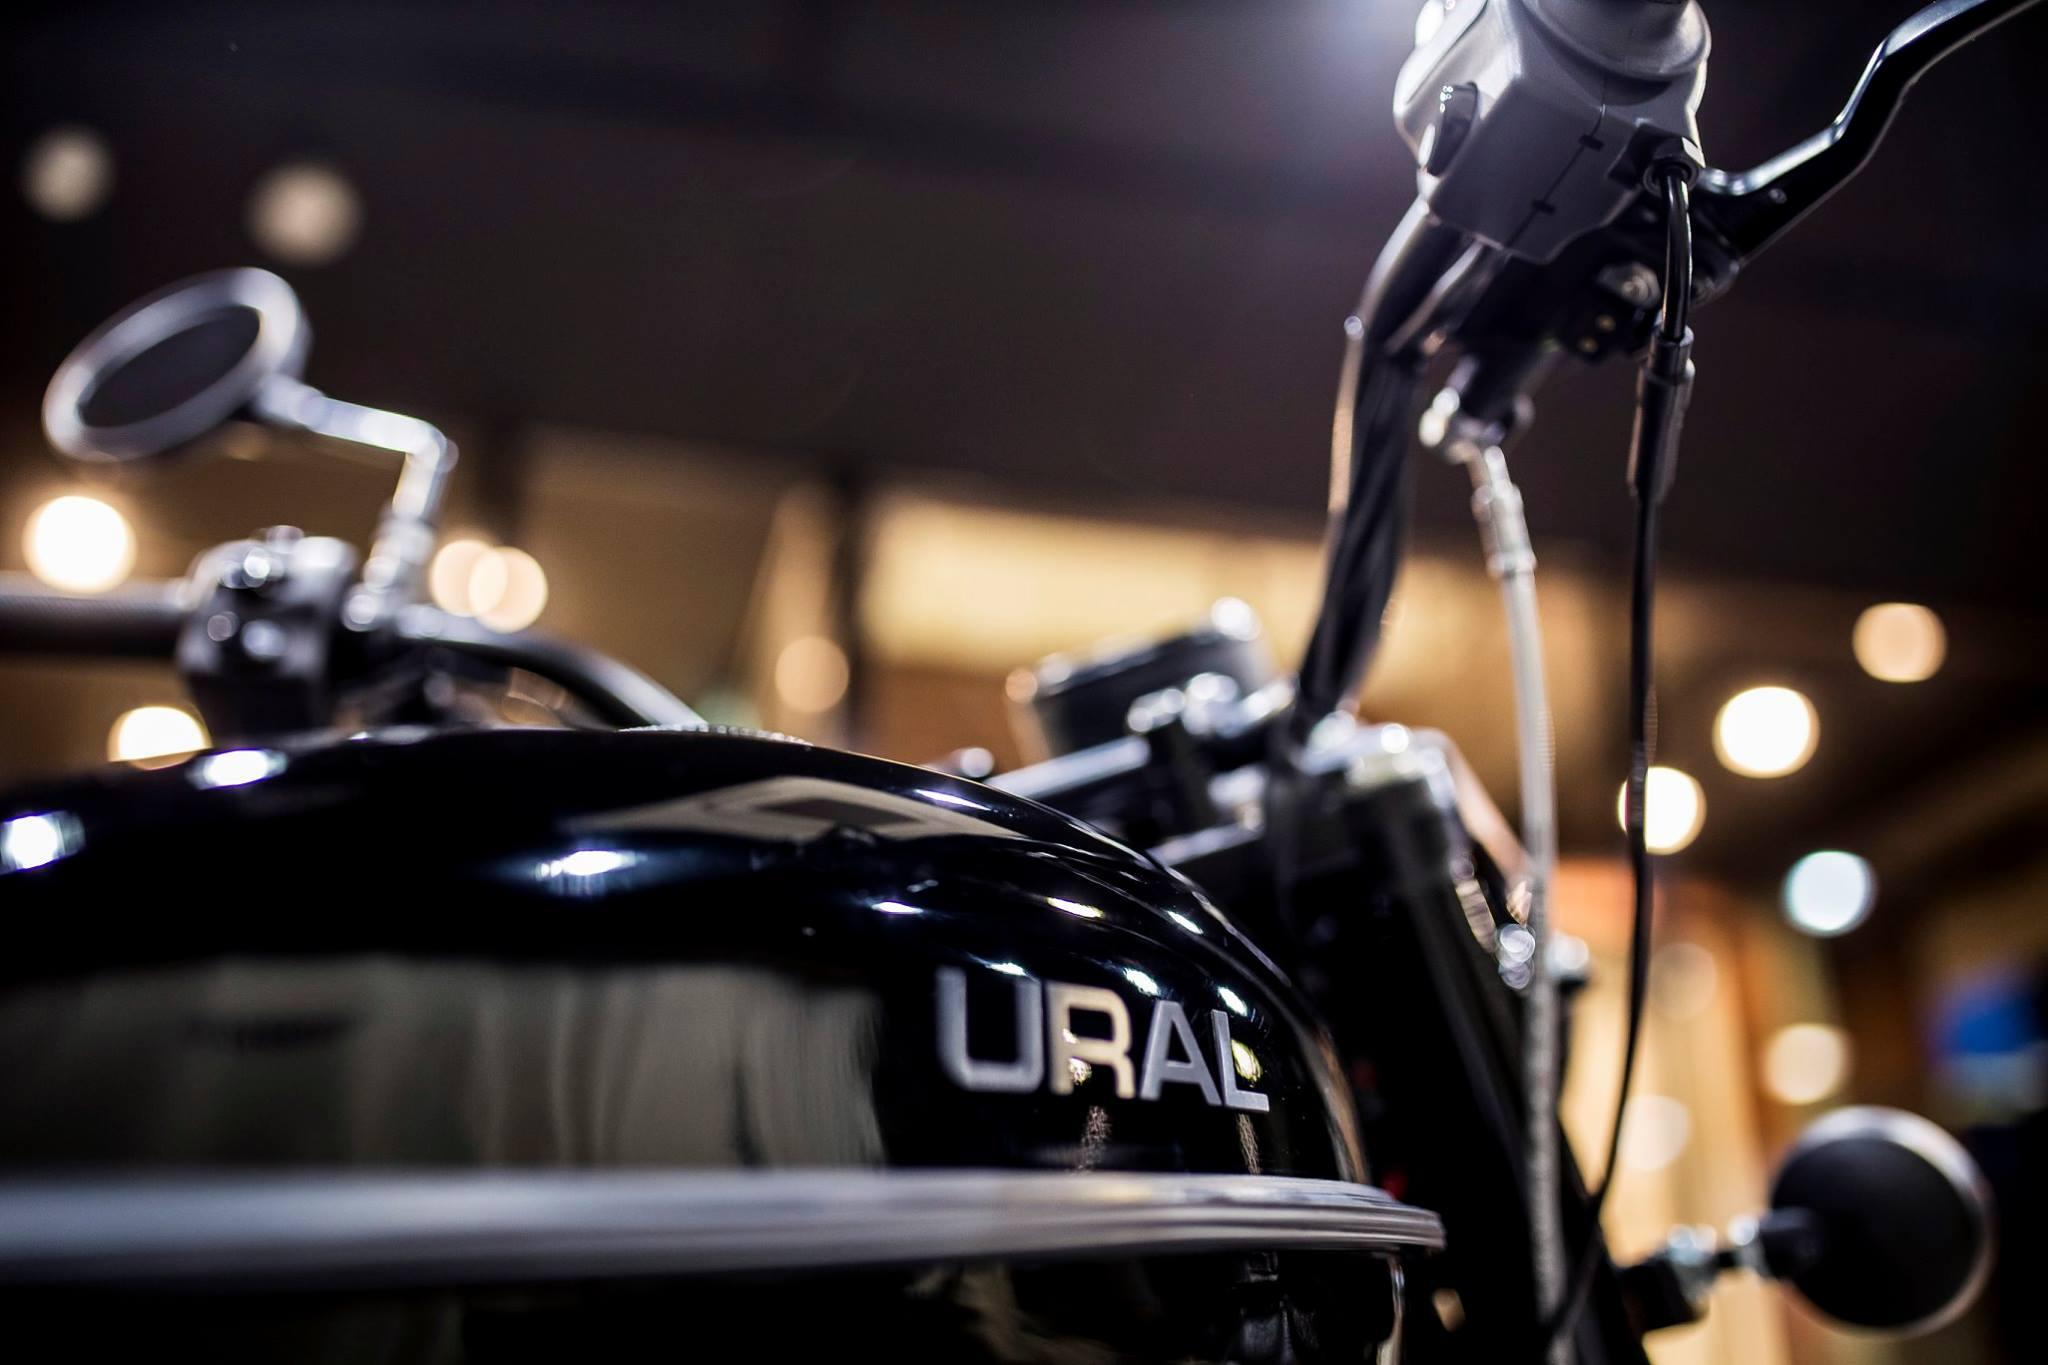 Ural Detail - Osaka Showroom